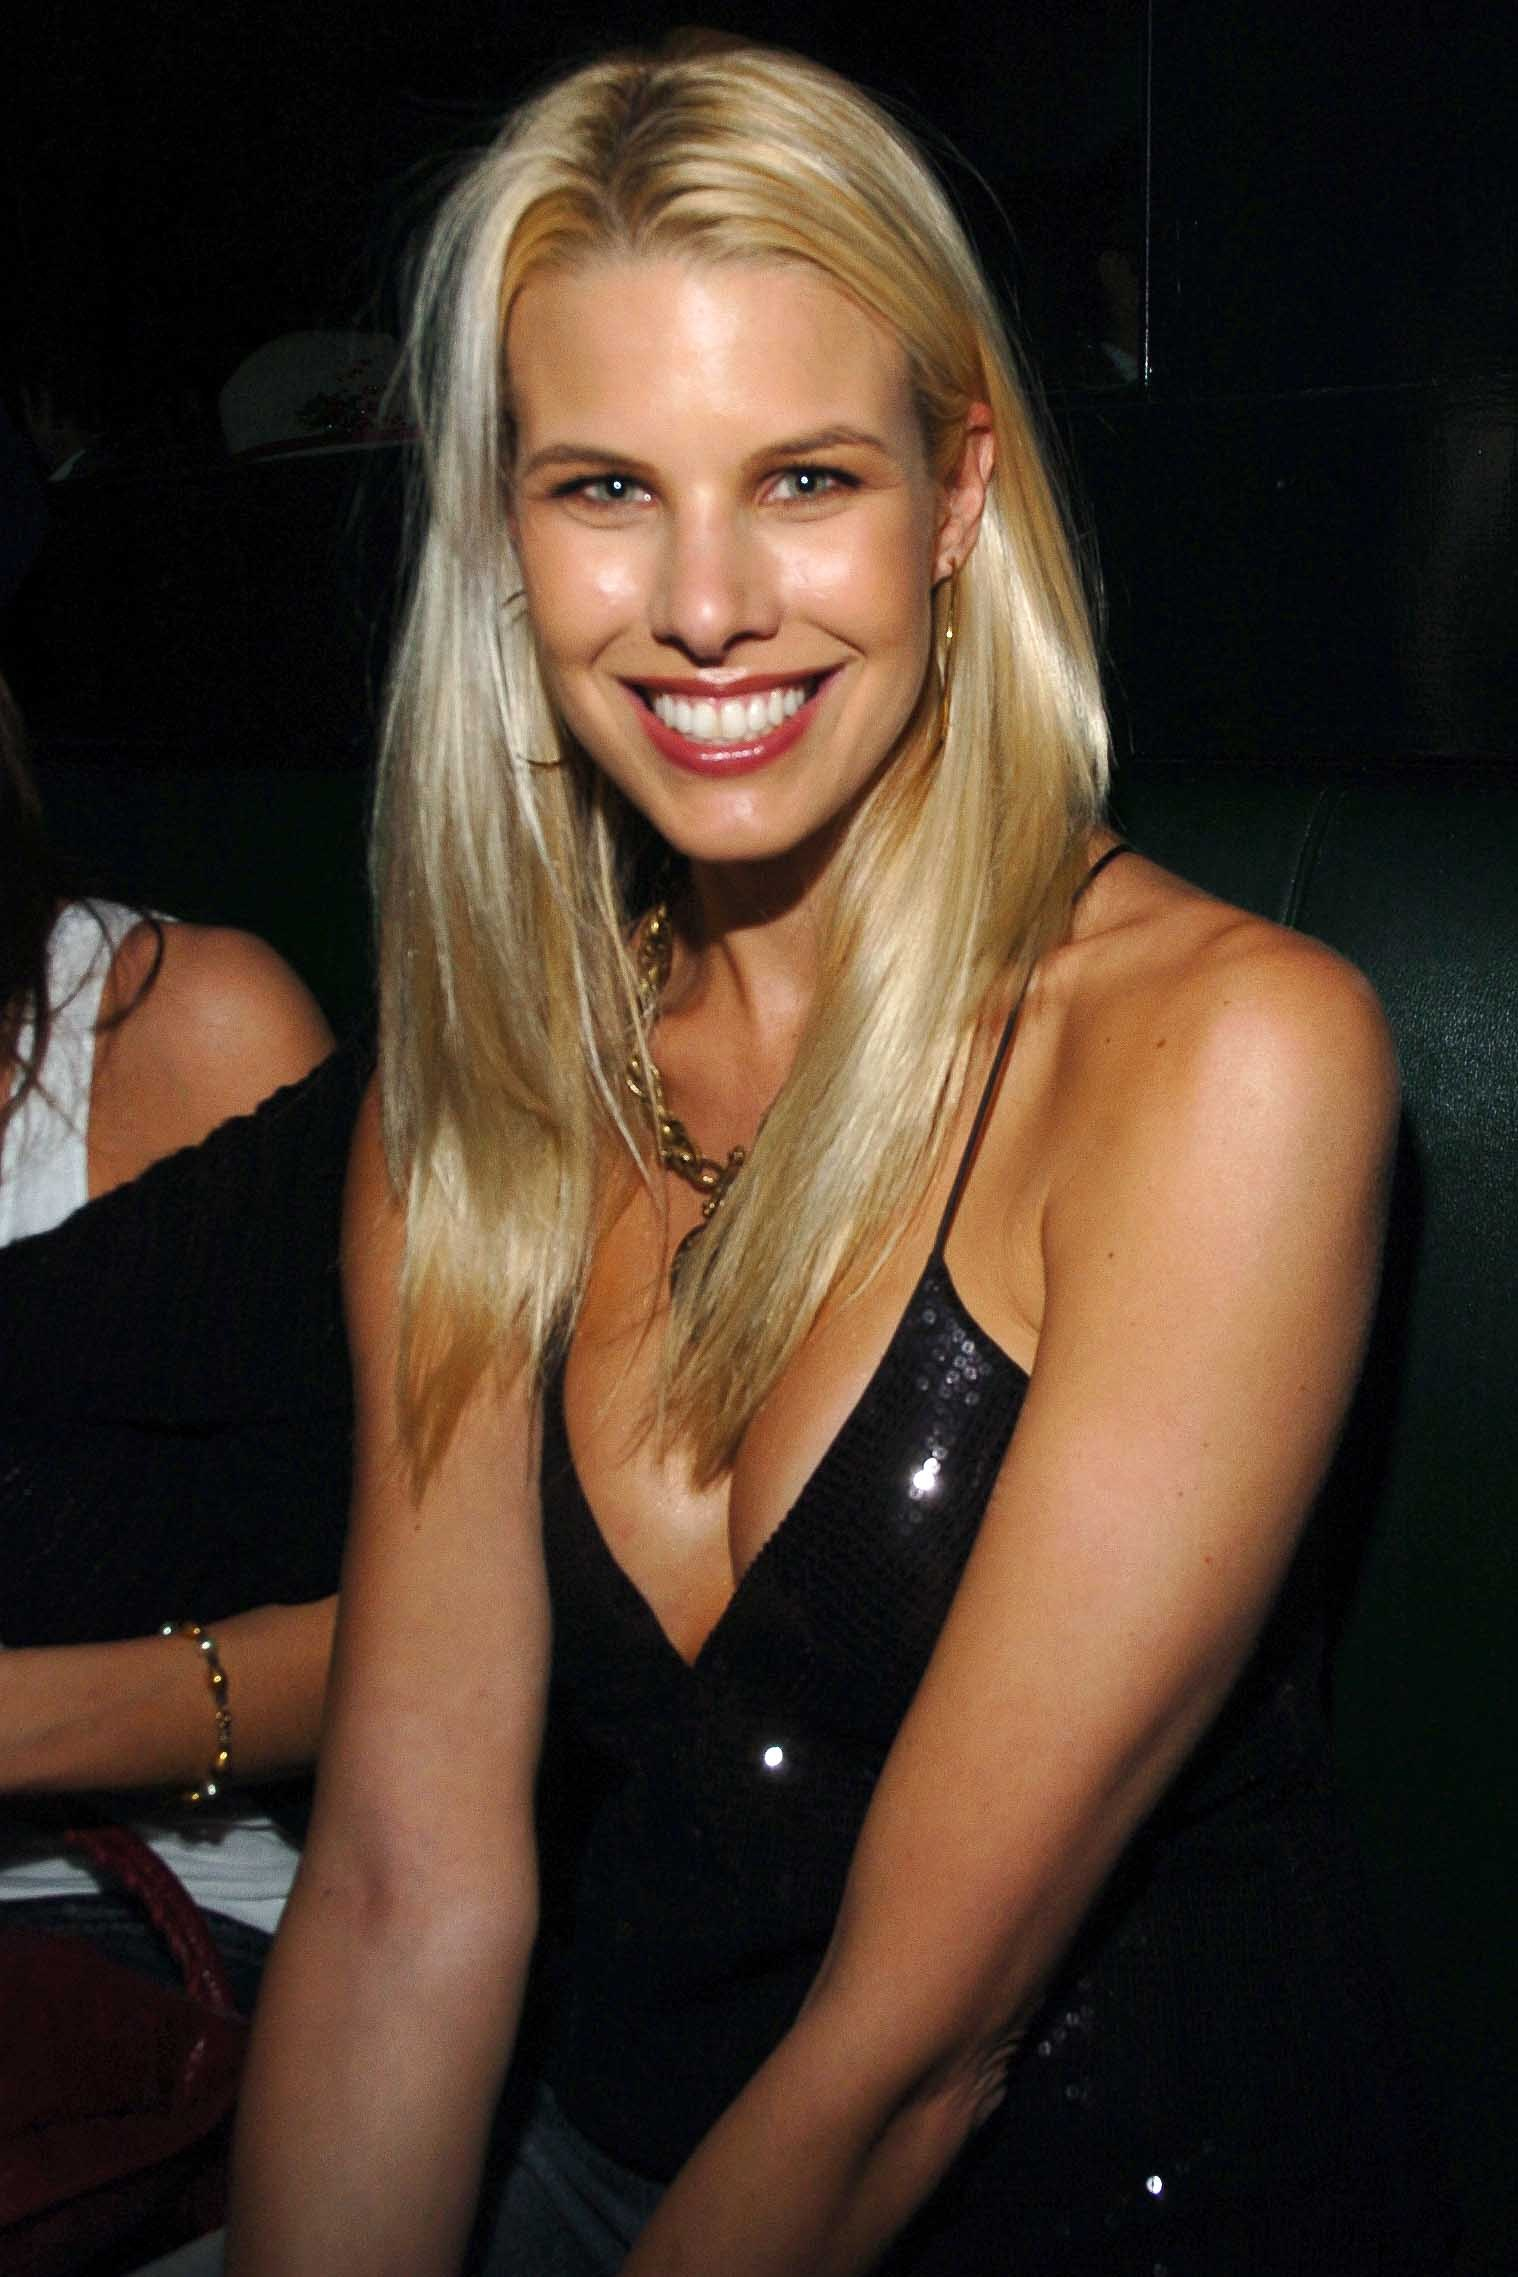 Answer Beth ostrosky stern hot would like